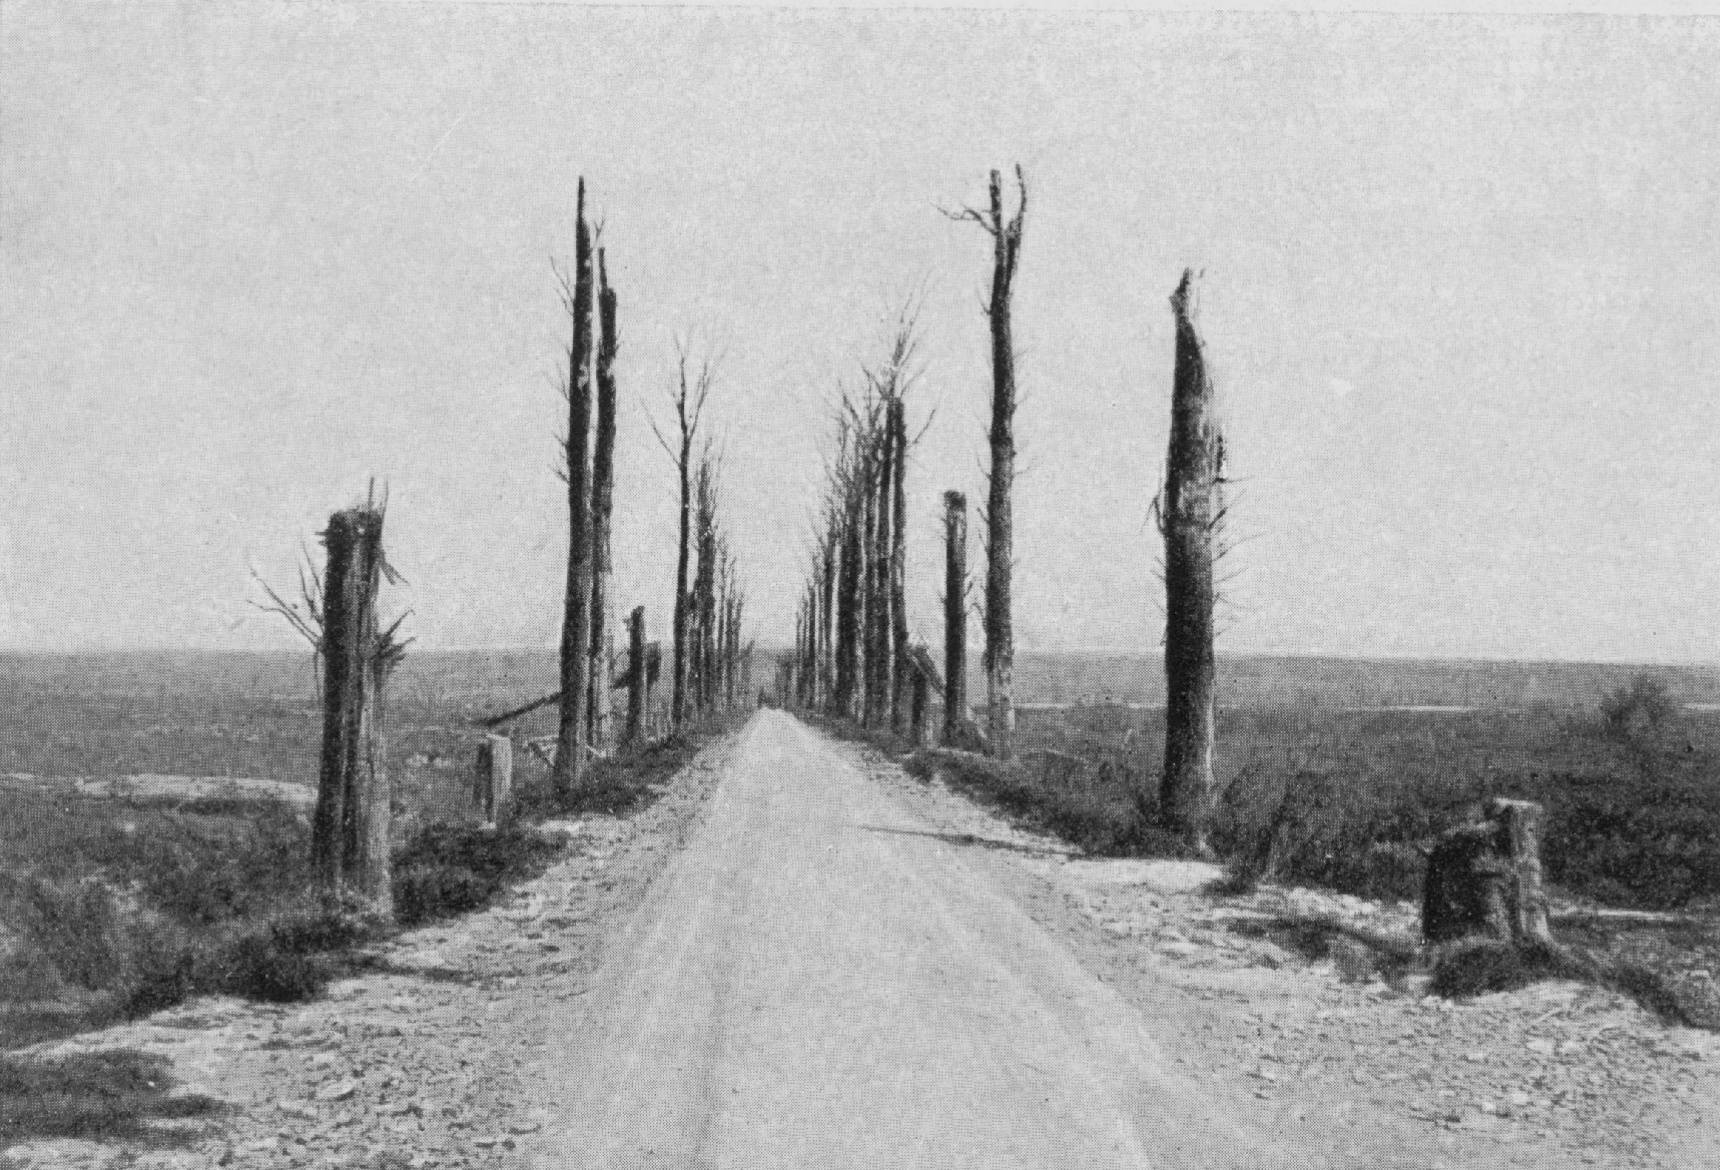 In this undated photo provided by Stad Mesen, shows the destruction on the road from Chateau de la Hutte to the Messines Ridge in Messines, Belgium. The area surrounding Messines ridge was bitterly fought over during the Battle of Messines in June 1917. At the end of four years of war the region was completely devastated.